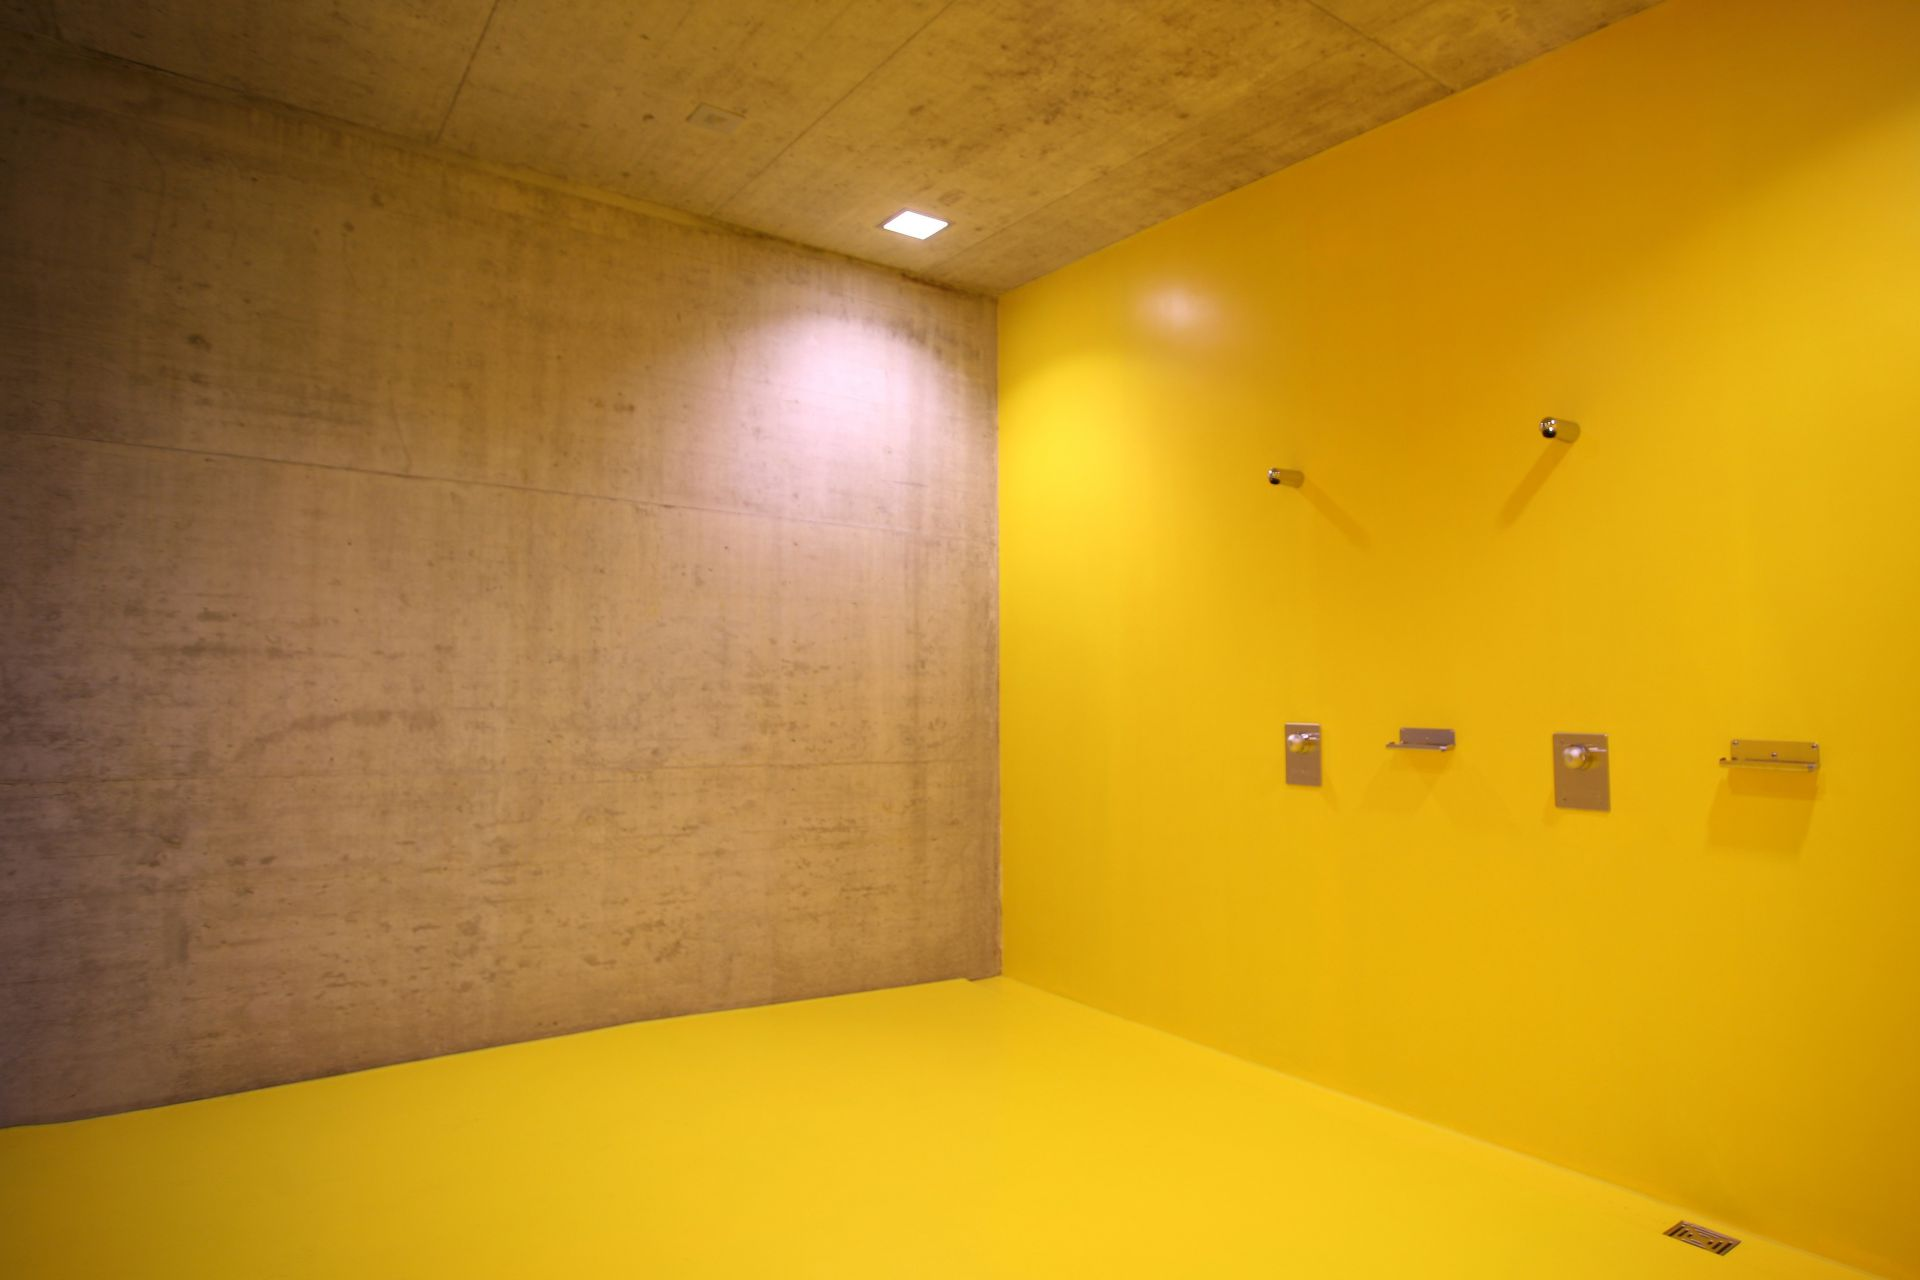 Colorful floor and wall coating made with Sika coating systems